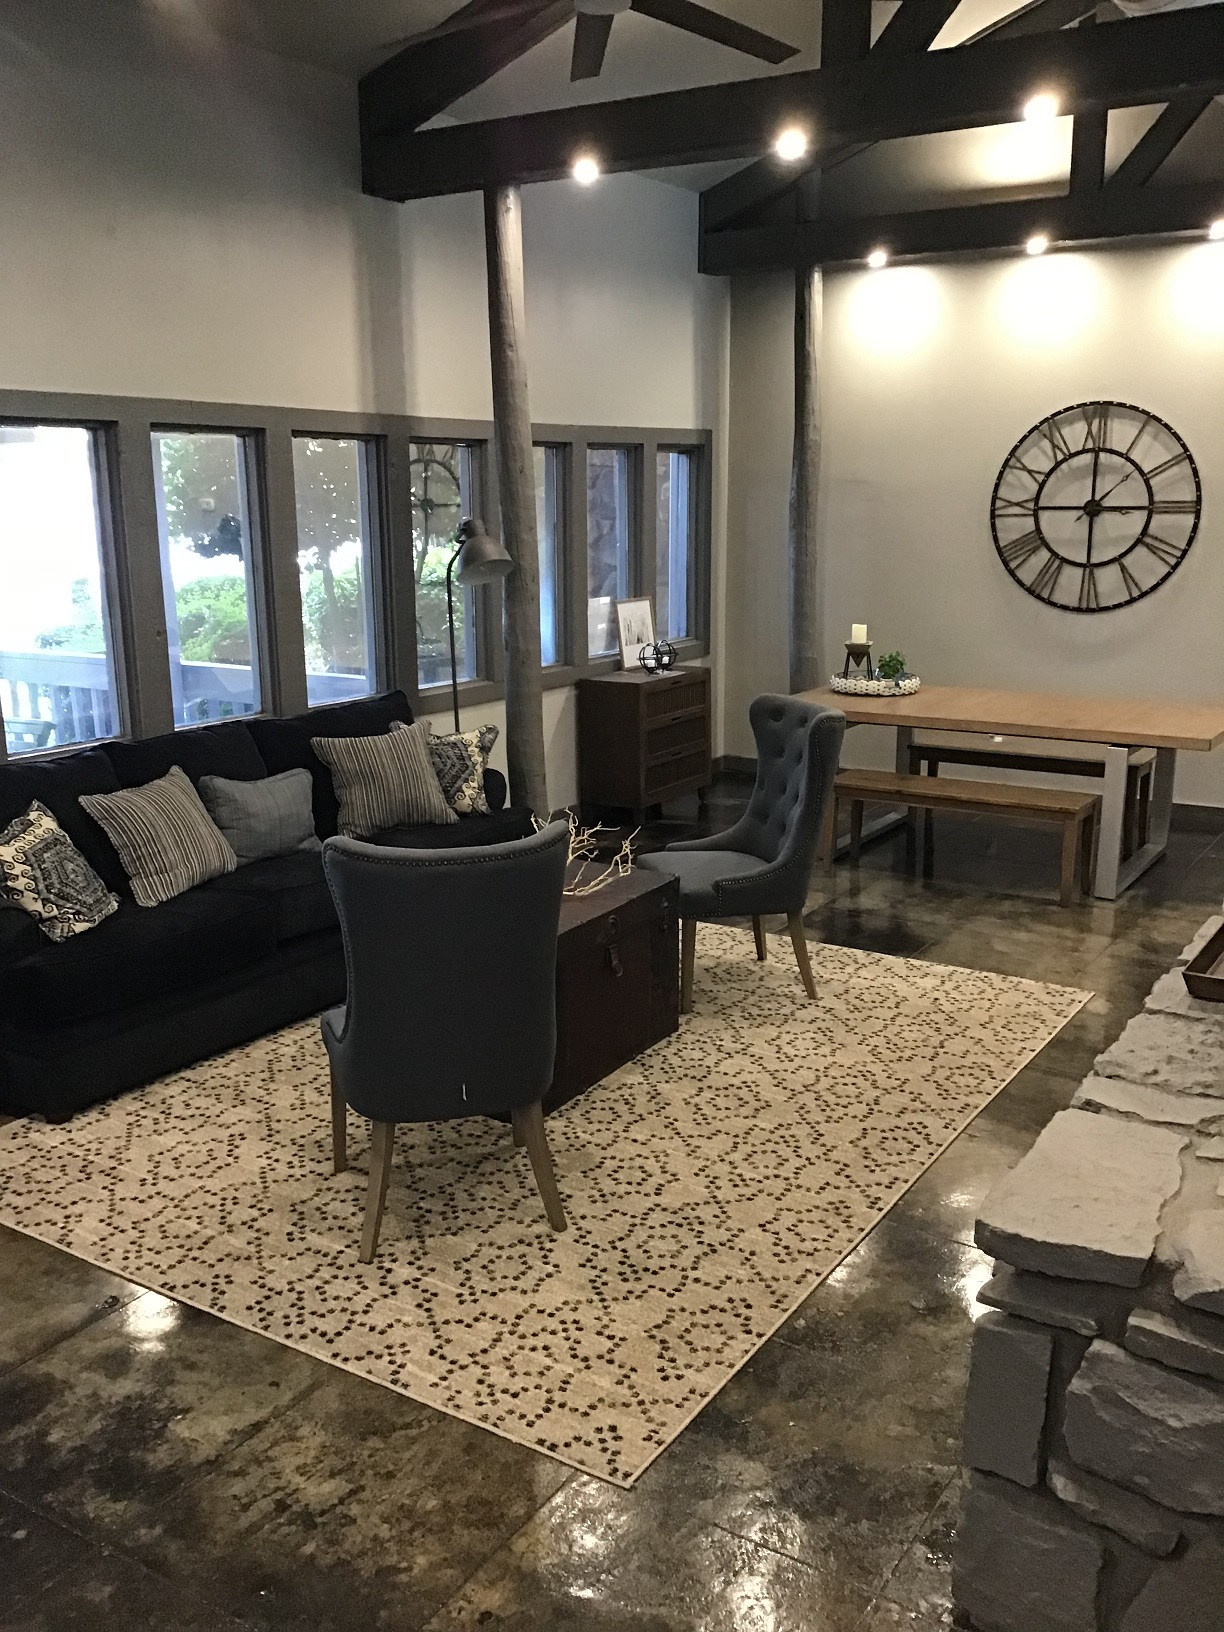 Property View at Rustic Woods Apartments in Tulsa, Oklahoma